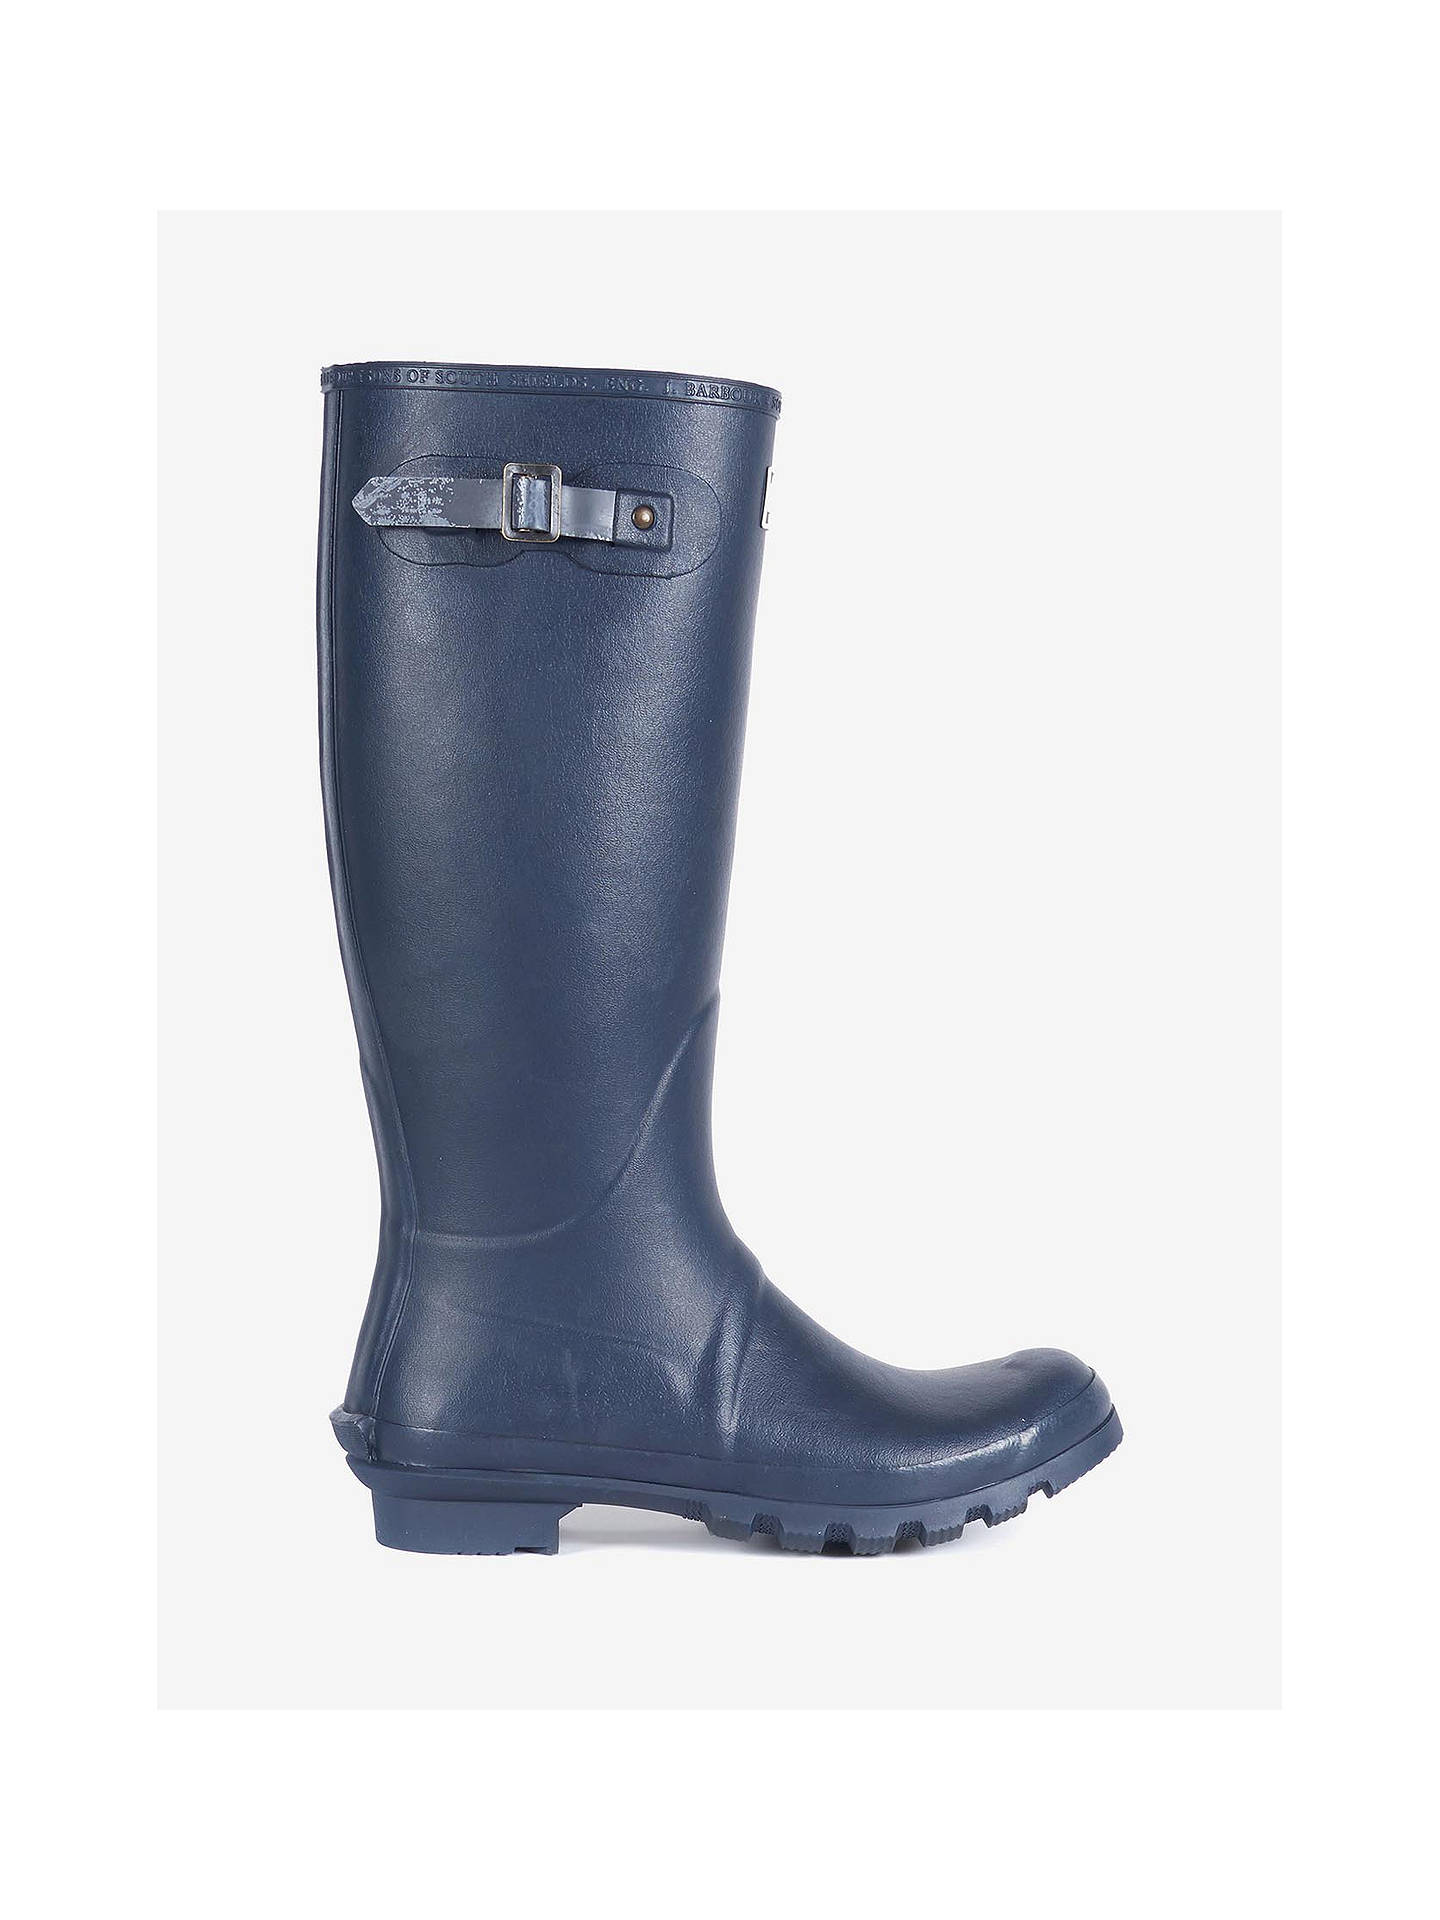 BuyBarbour Bede Waterproof Wellington Boots, Navy, 7 Online at johnlewis.com